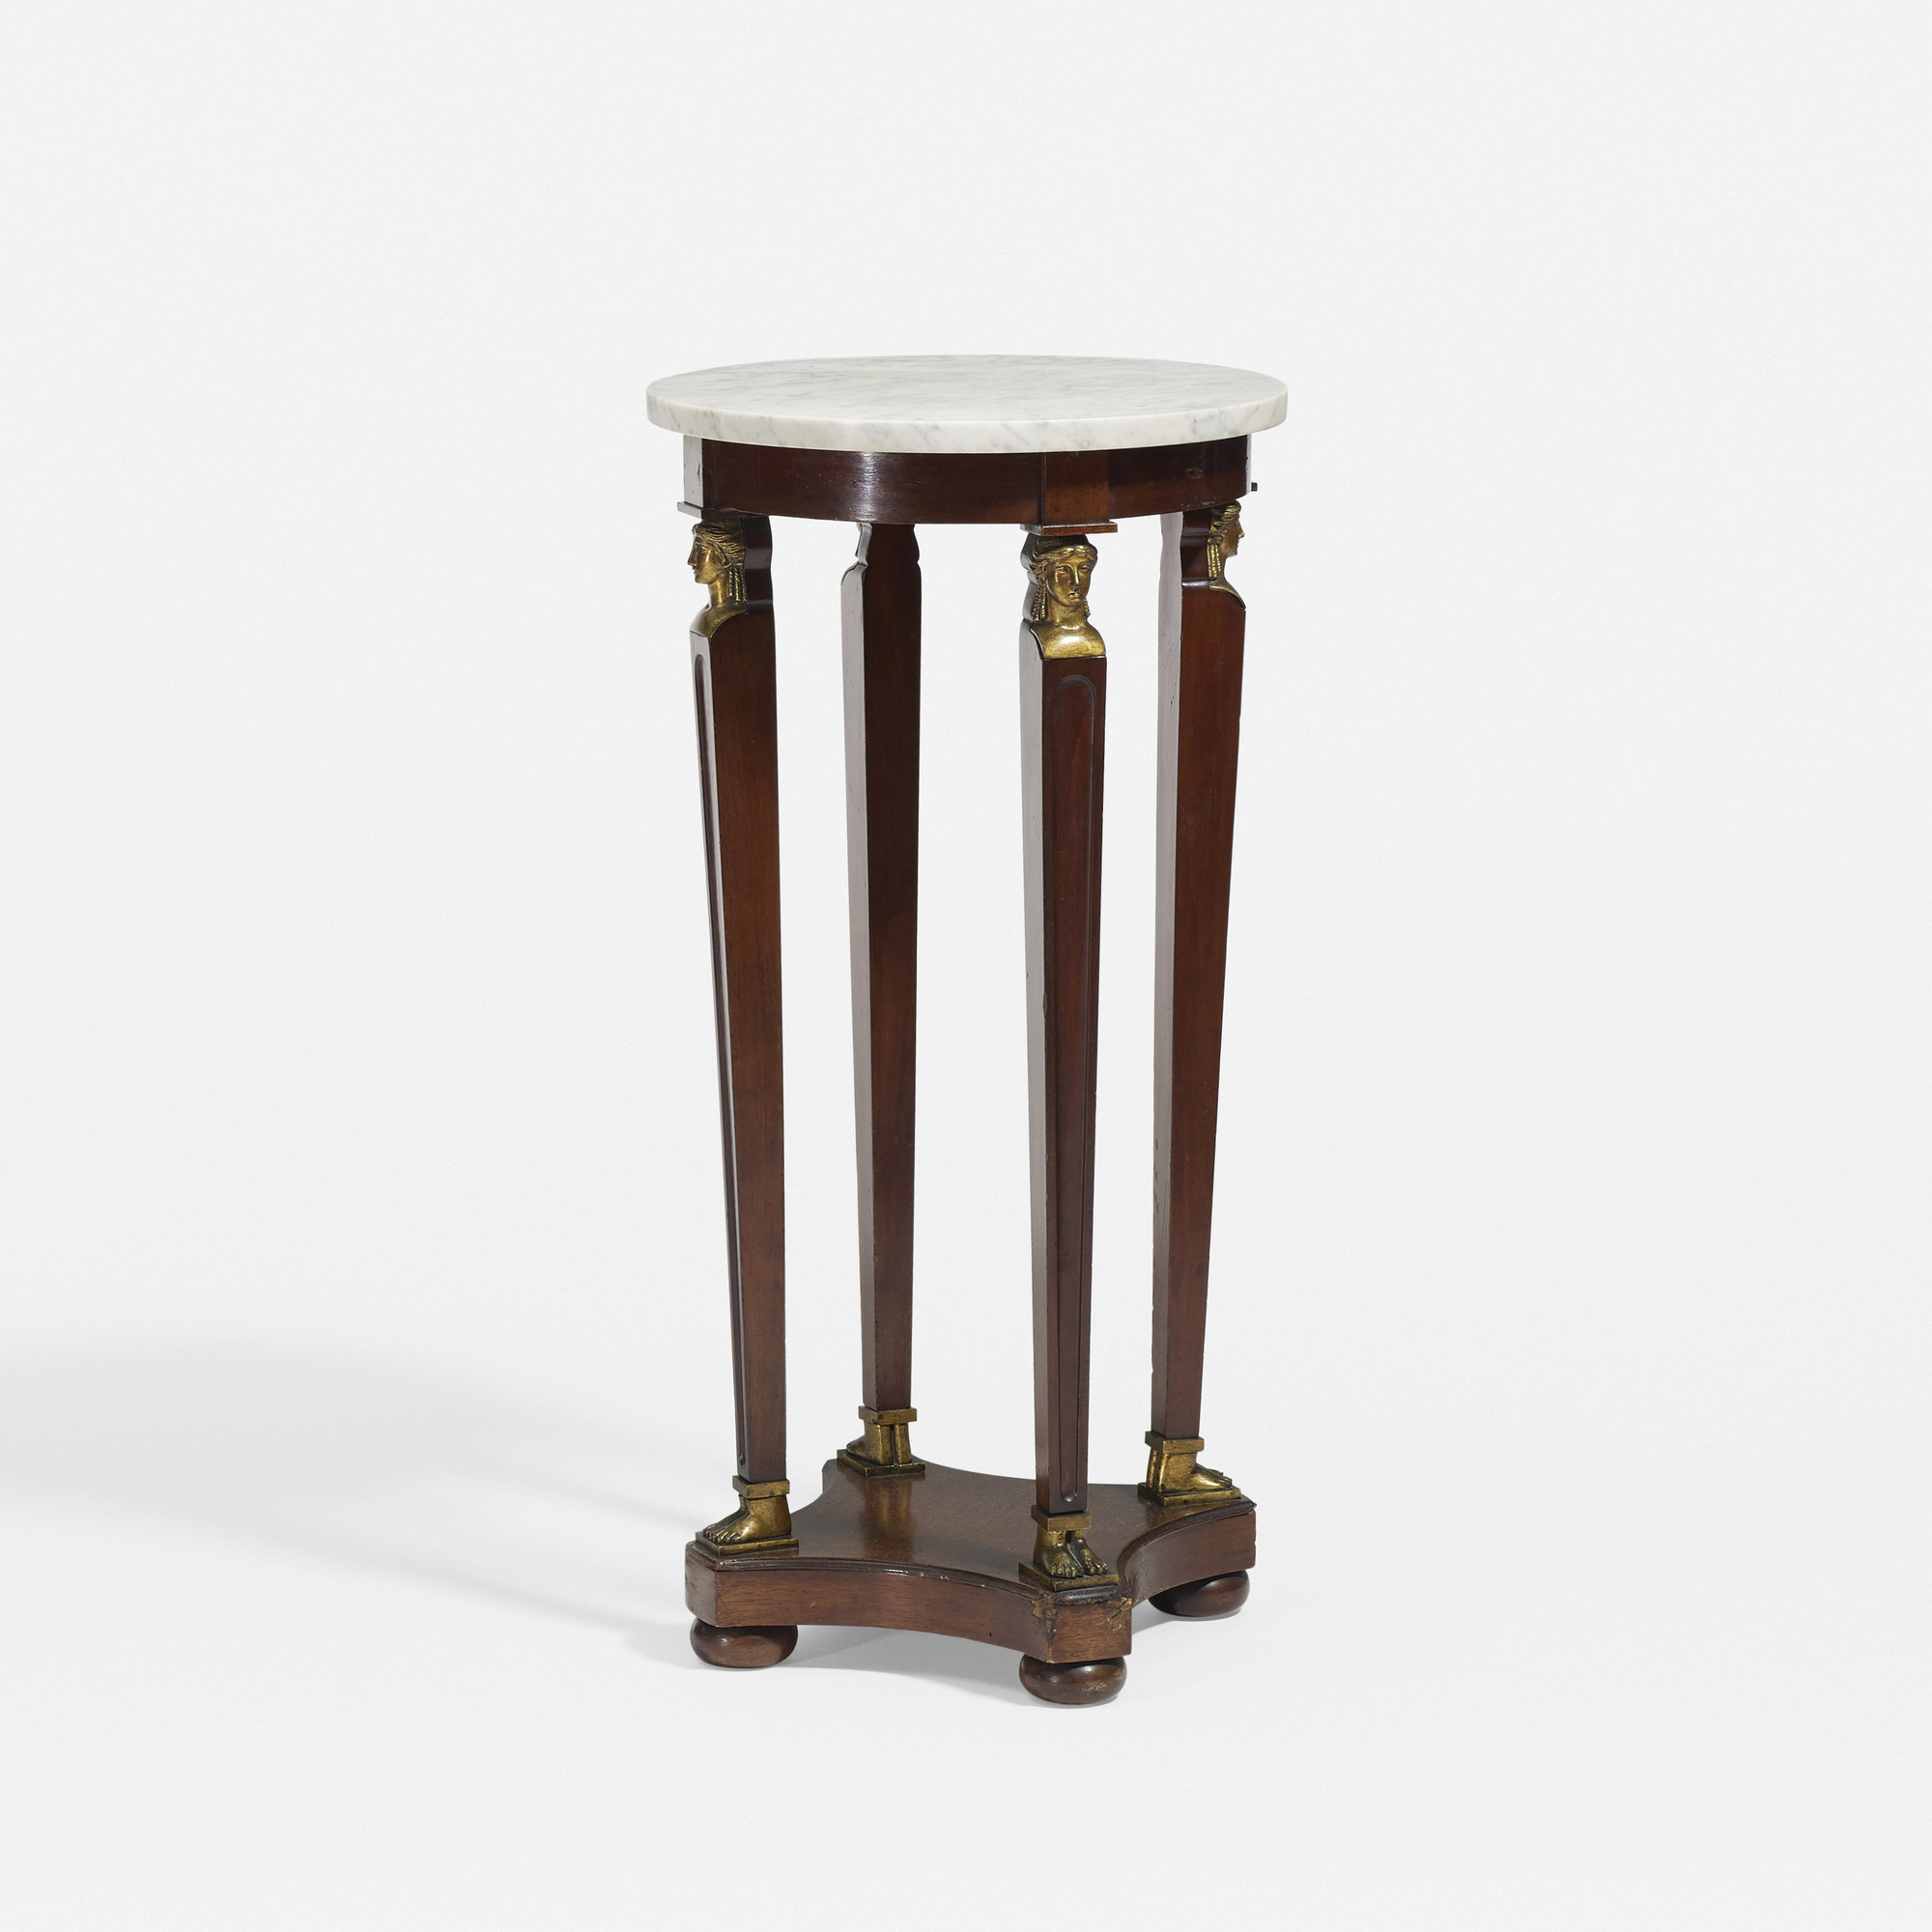 276: Empire / occasional table (1 of 2)